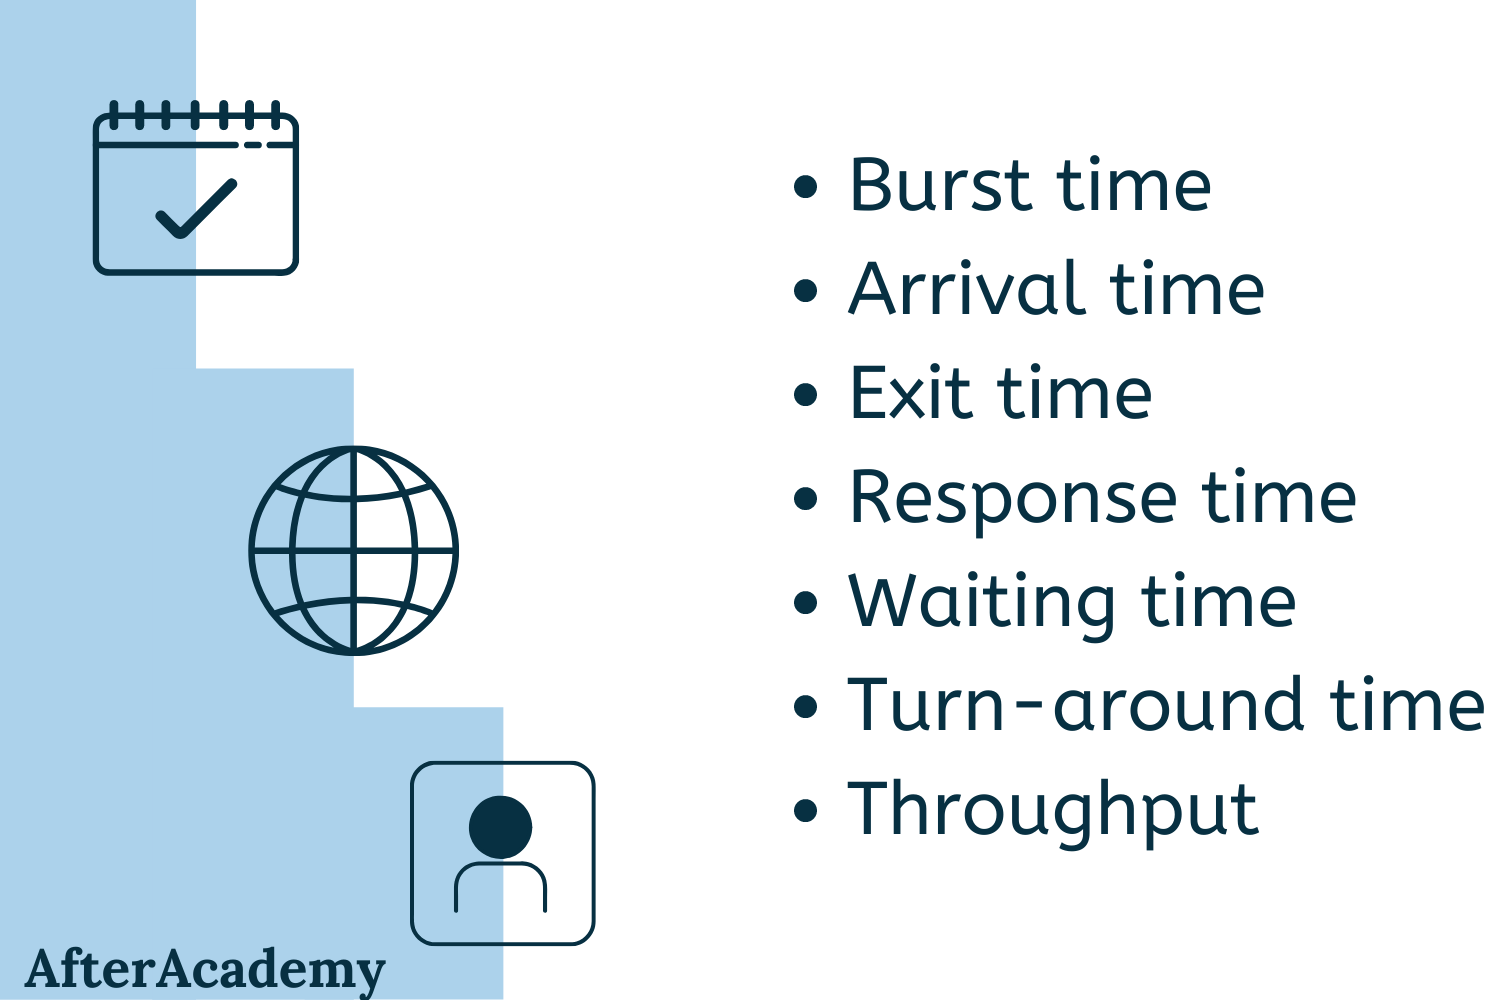 What is Burst time, Arrival time, Exit time, Response time, Waiting time, Turnaround time, and Throughput?